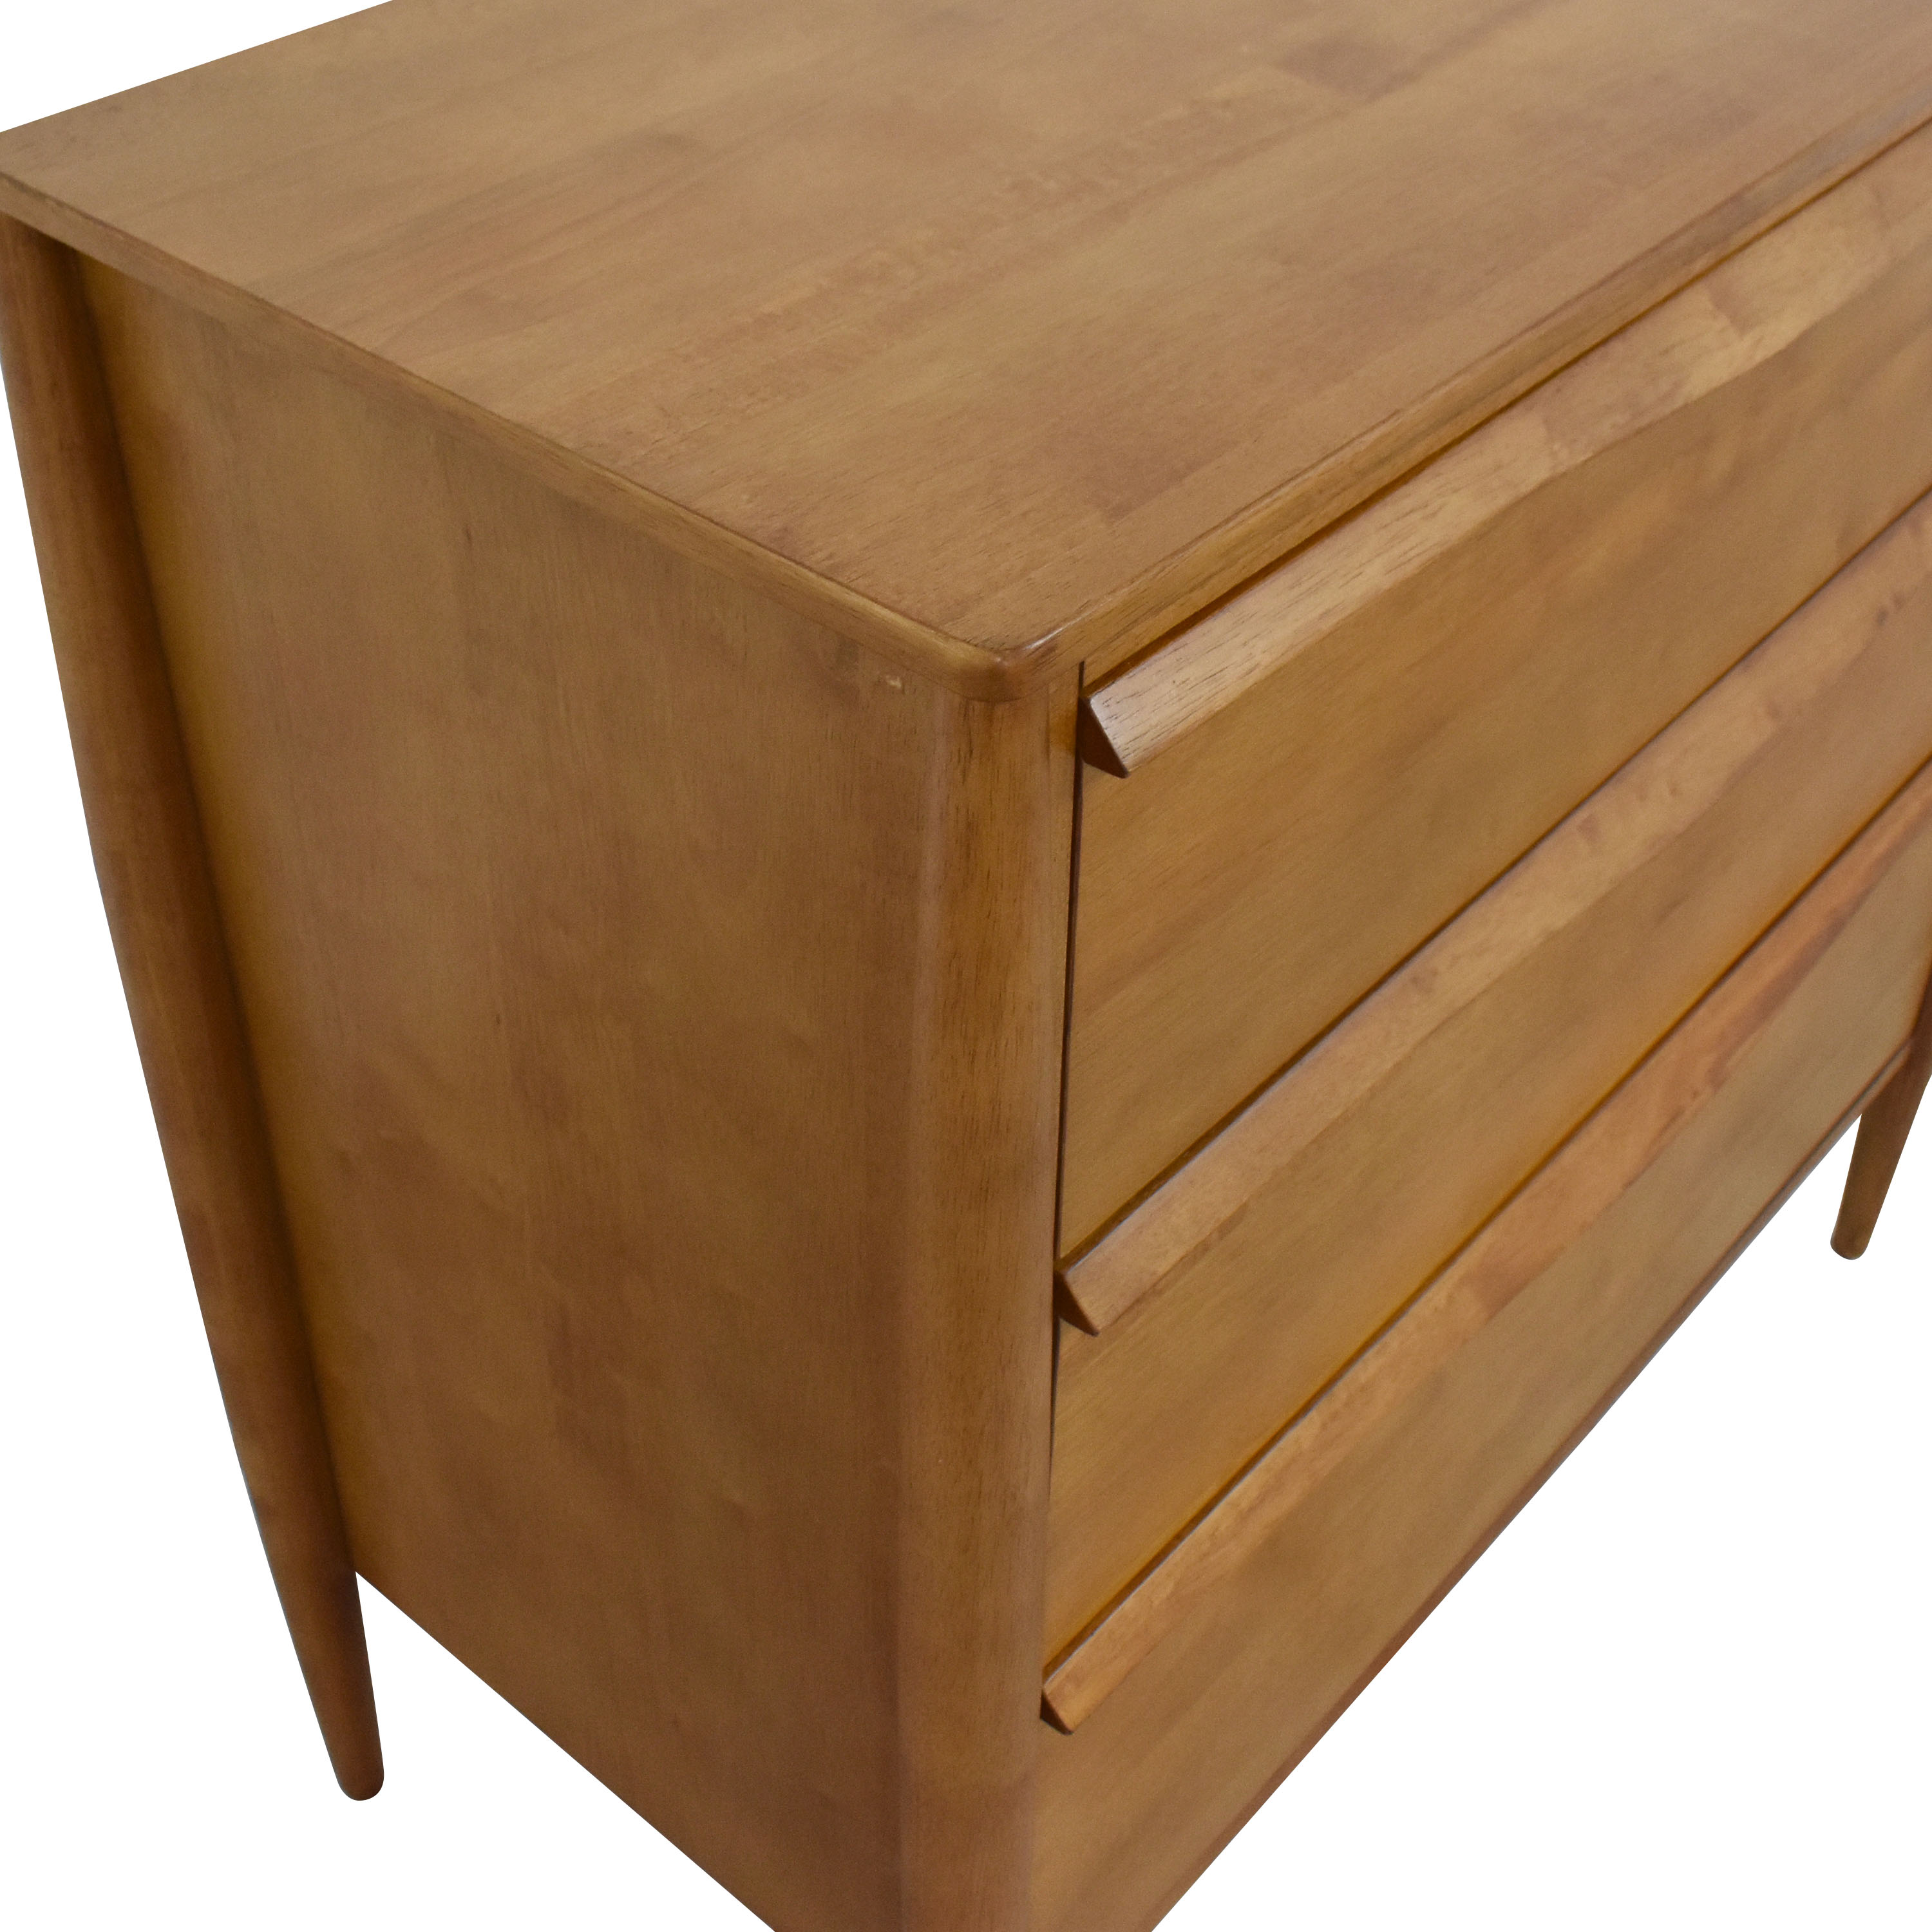 Urban Outfitters Urban Outfitters Huxley Three-Drawer Dresser for sale